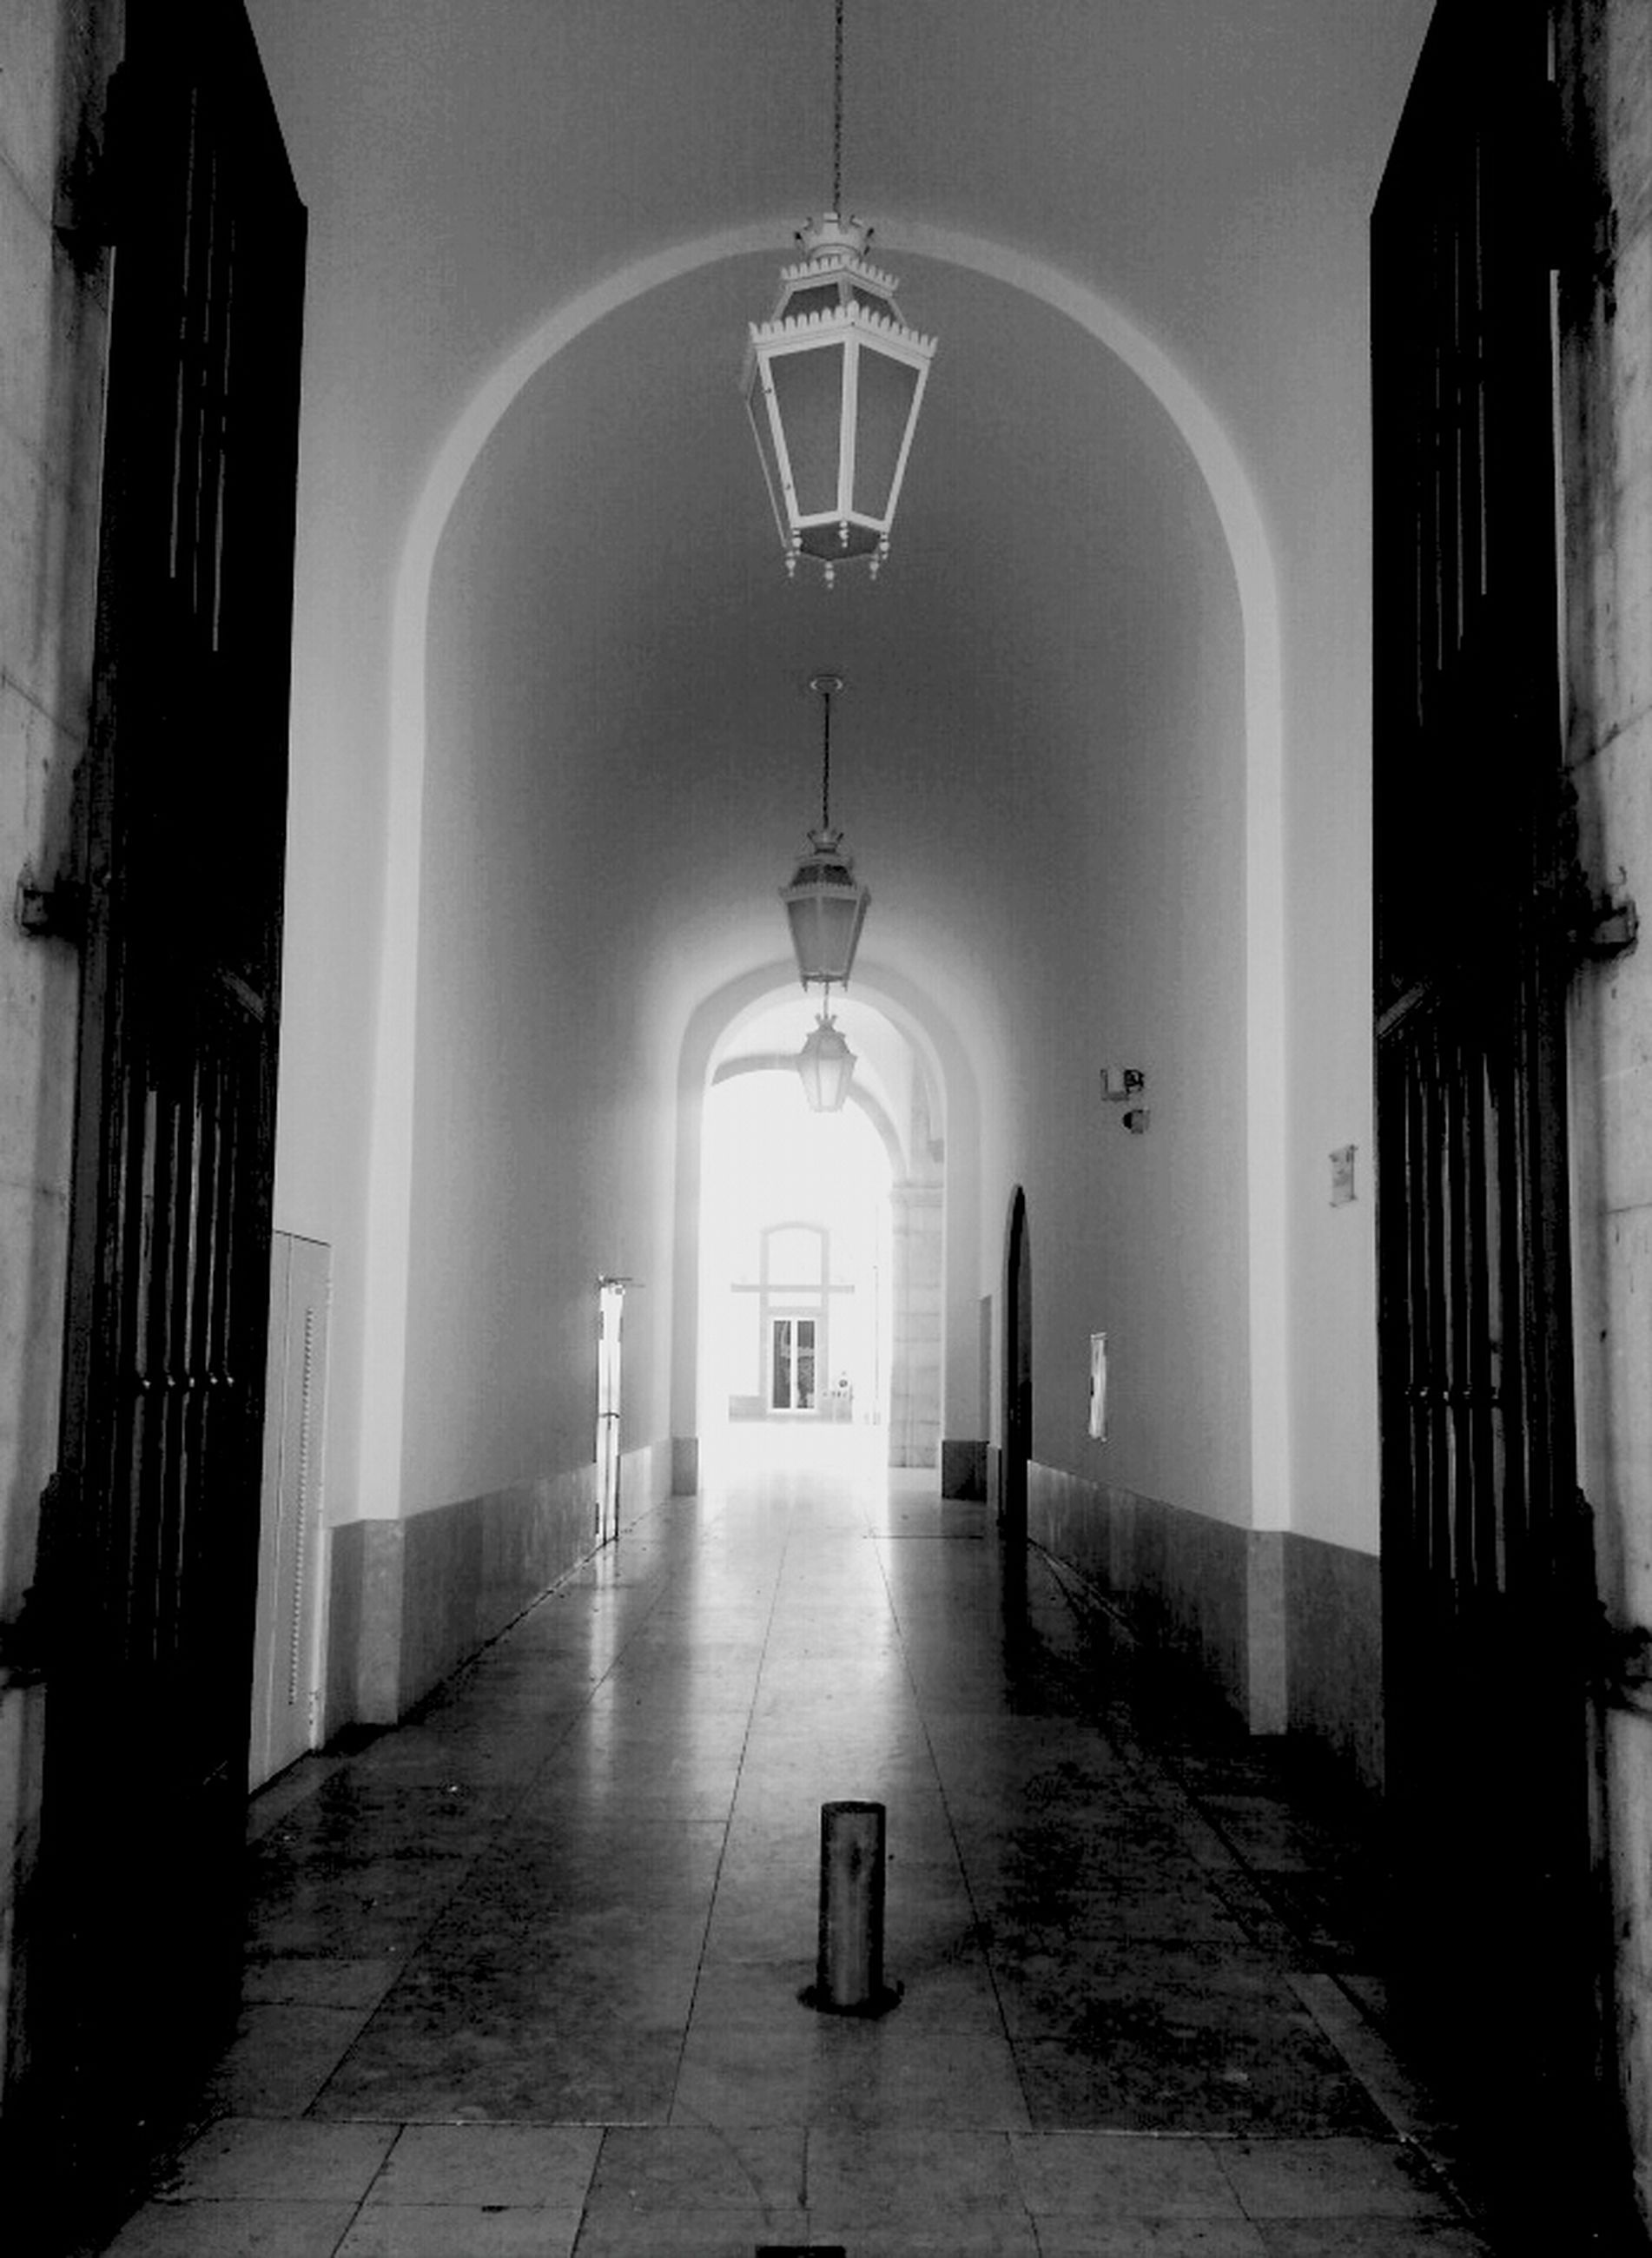 architecture, built structure, indoors, the way forward, corridor, arch, empty, lighting equipment, tiled floor, ceiling, illuminated, door, absence, flooring, entrance, building exterior, building, narrow, wall - building feature, walkway